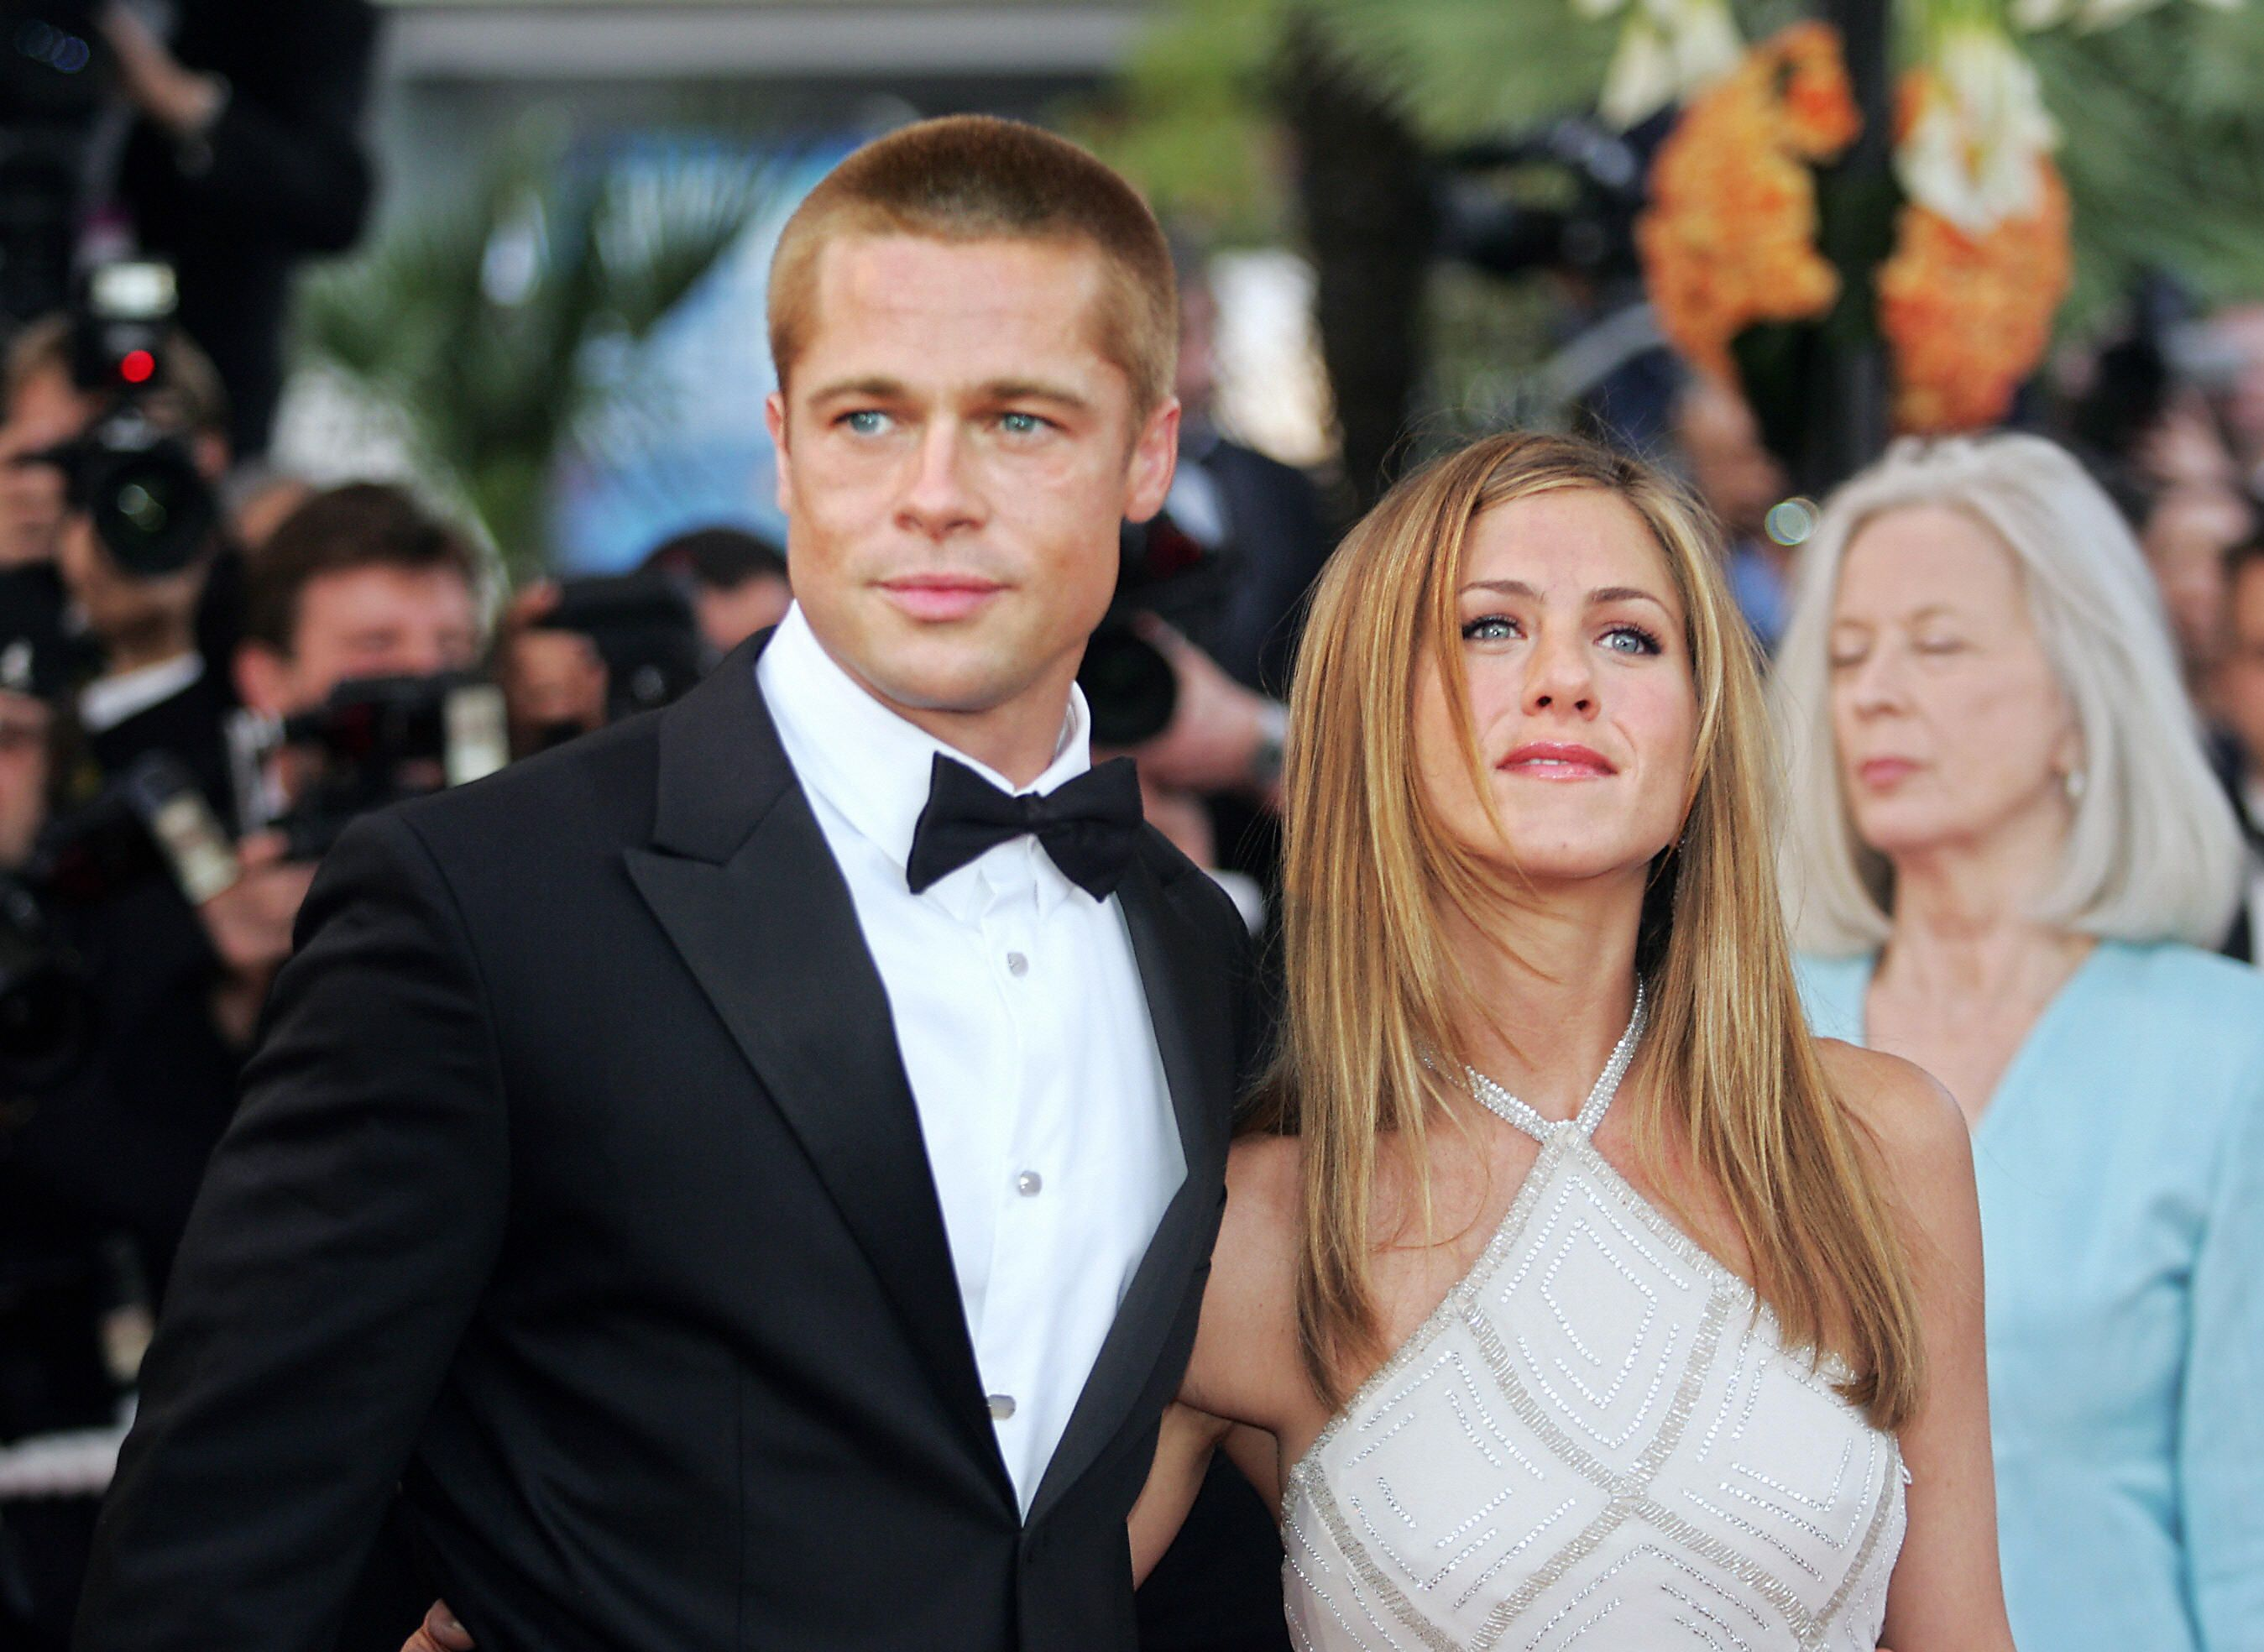 Brad Pitt Reportedly Apologized to Jennifer Aniston For Messing Up their Relationship